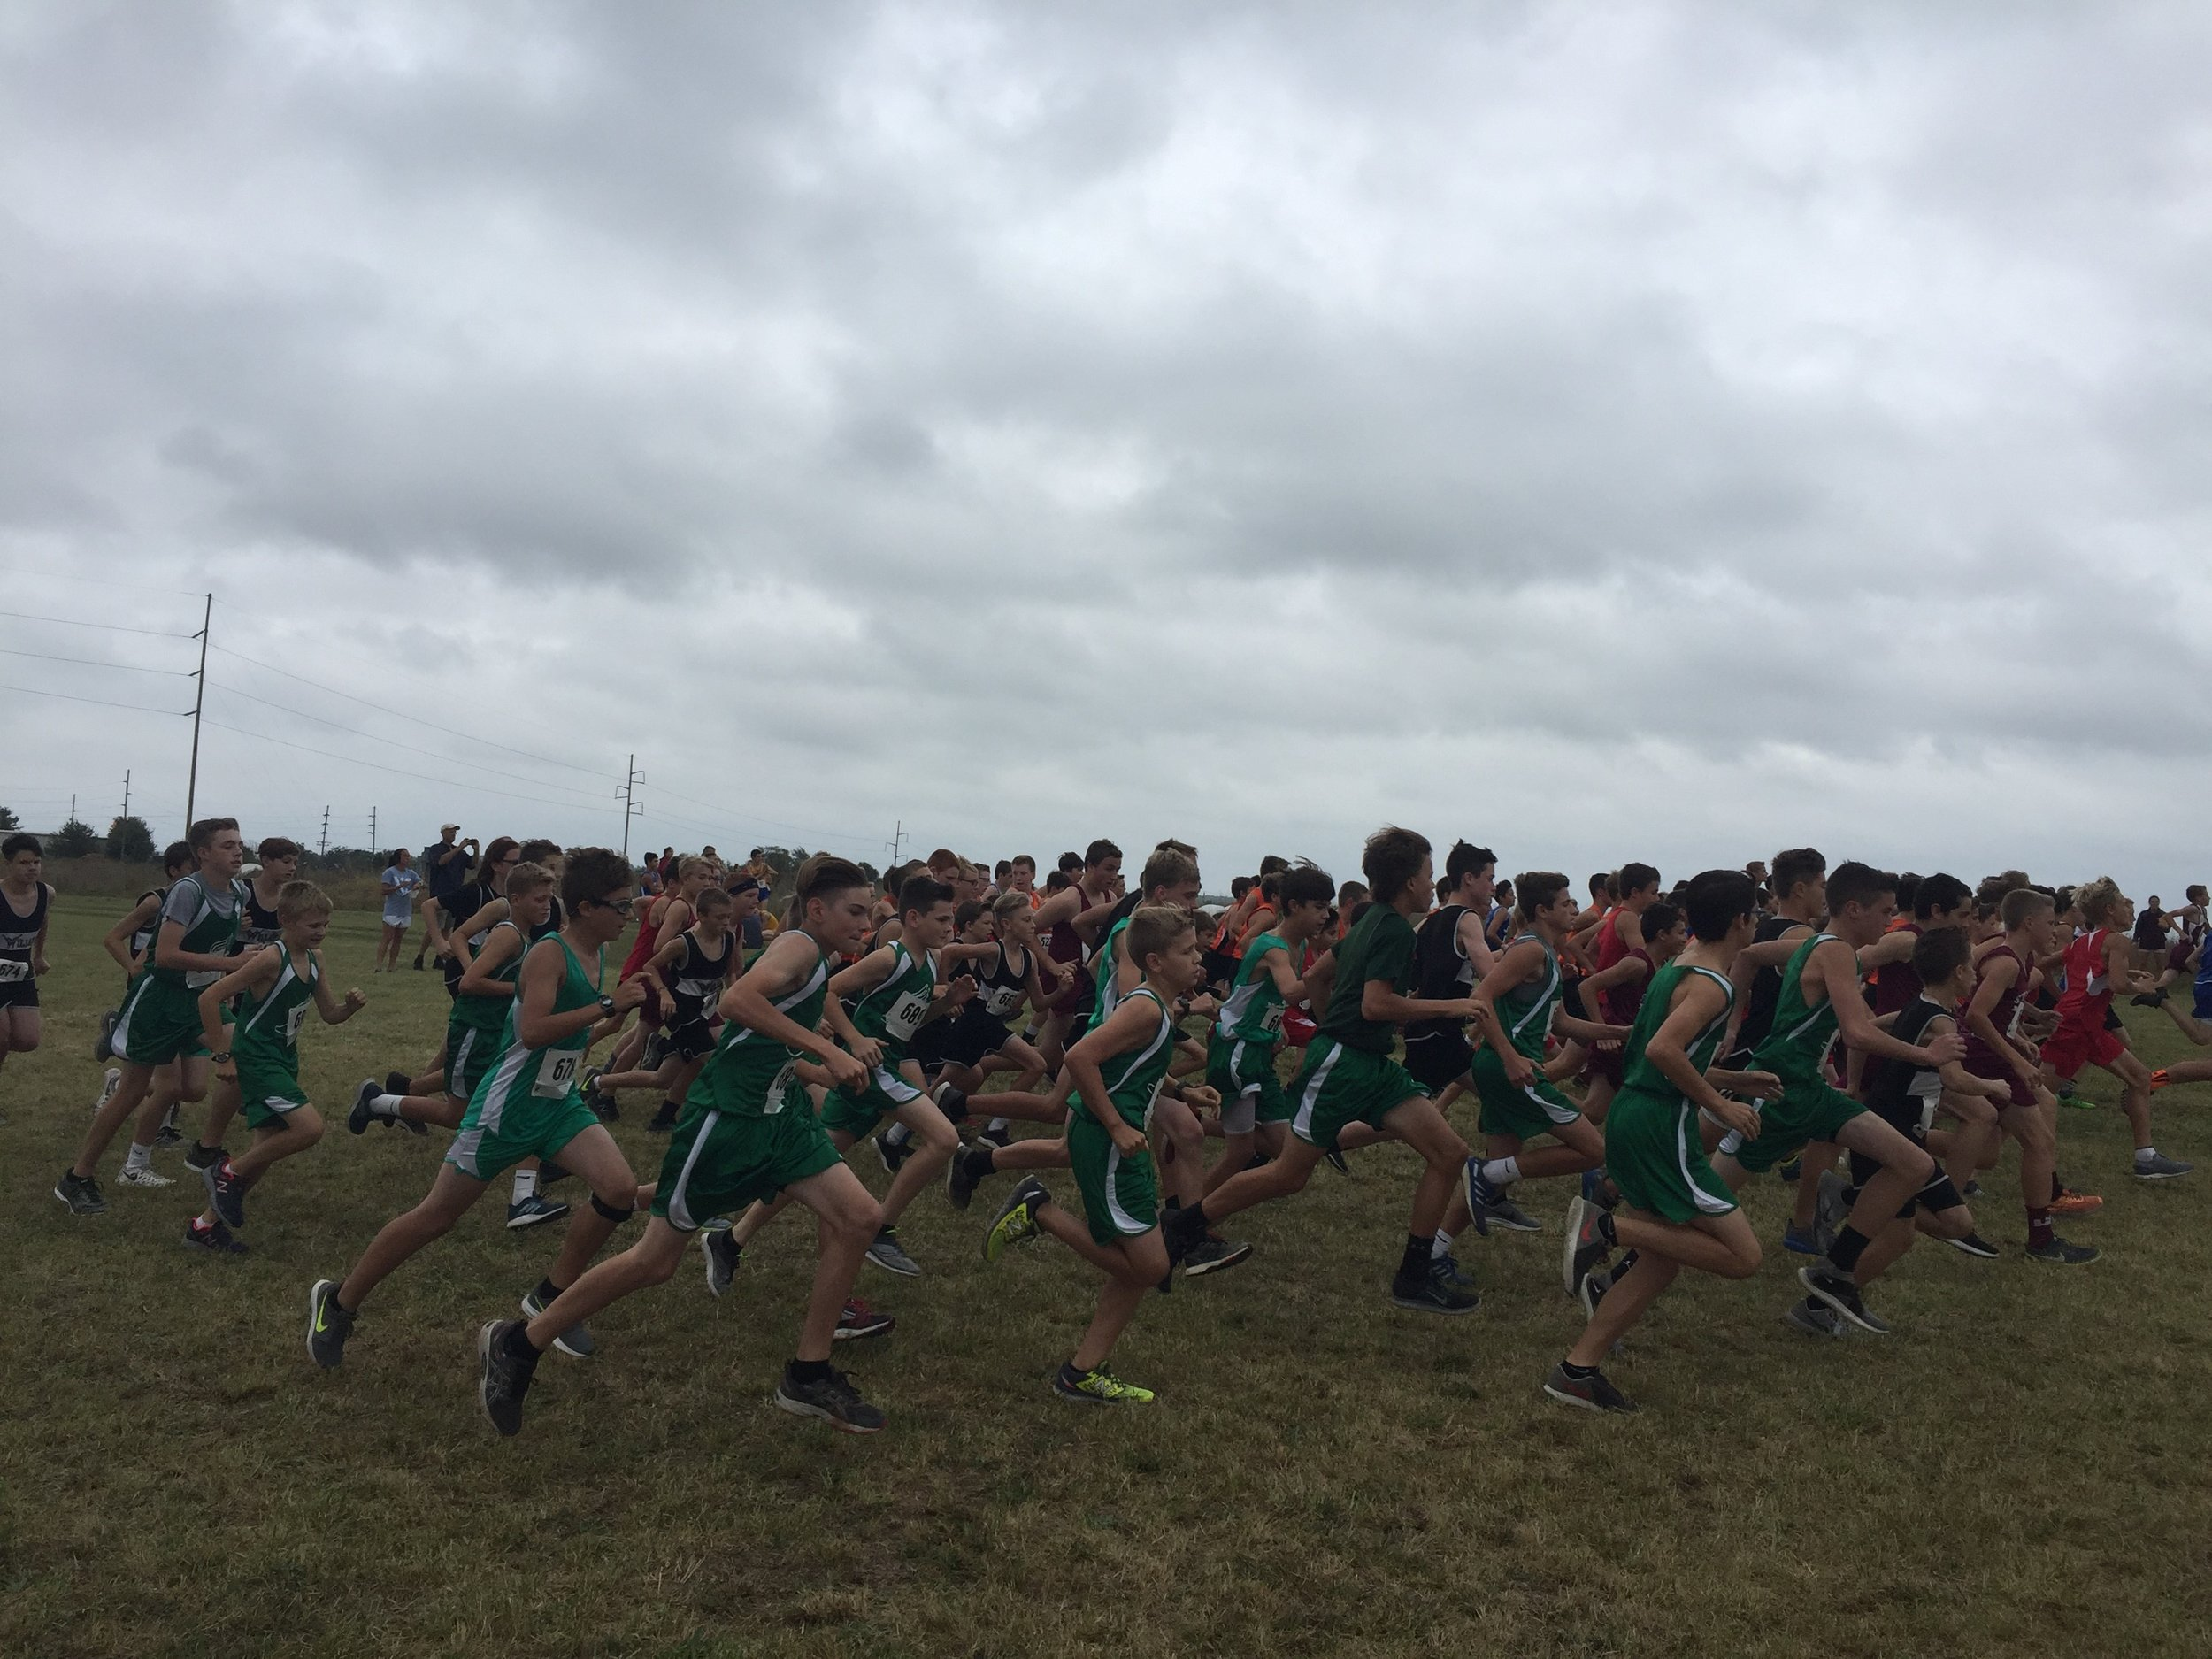 Springfield Underground is the annual site for the Irish Invitational Junior High and High School Cross Country meet.